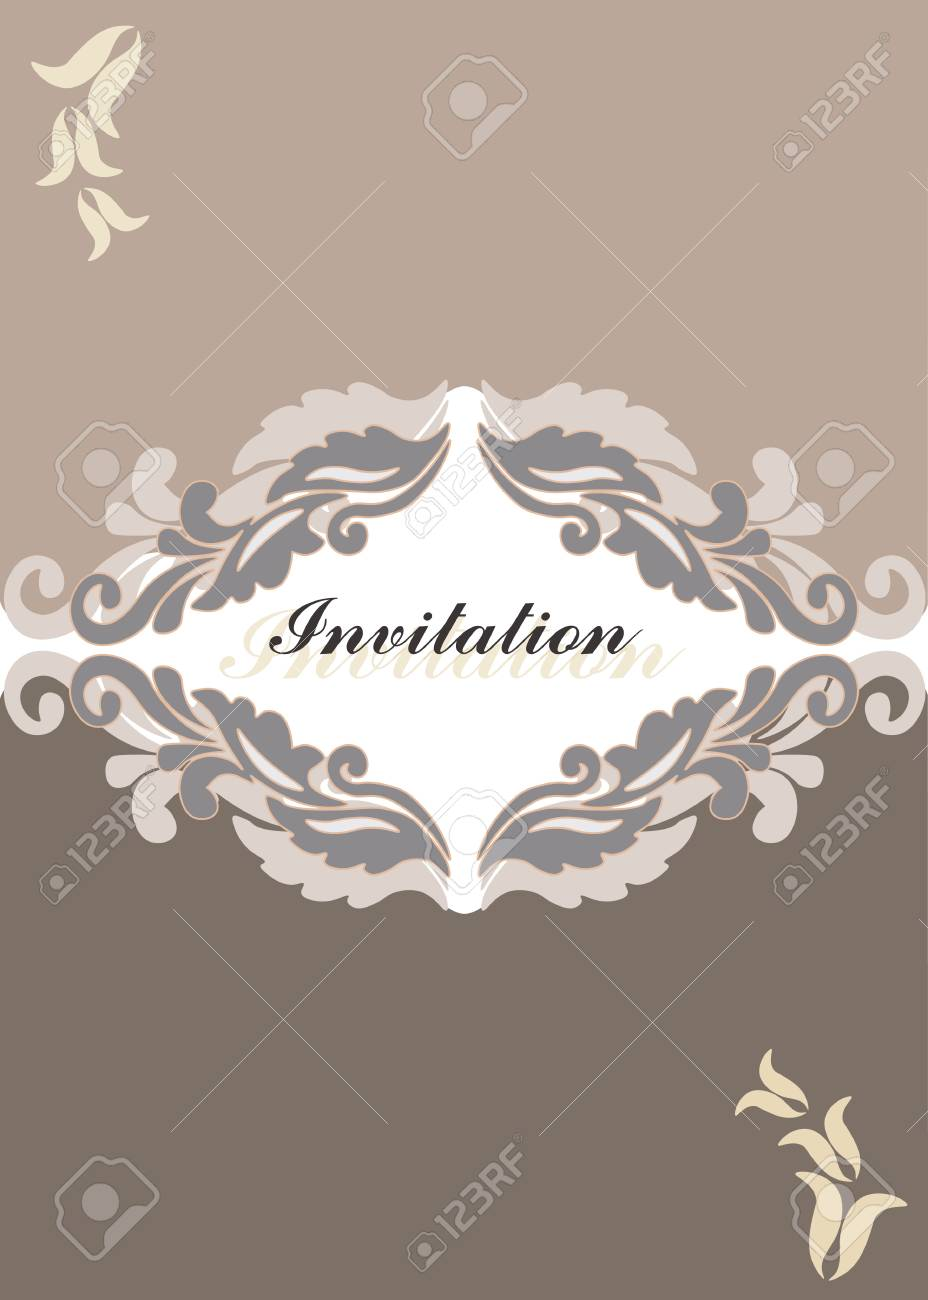 floral ornament invitation card royalty free cliparts vectors and